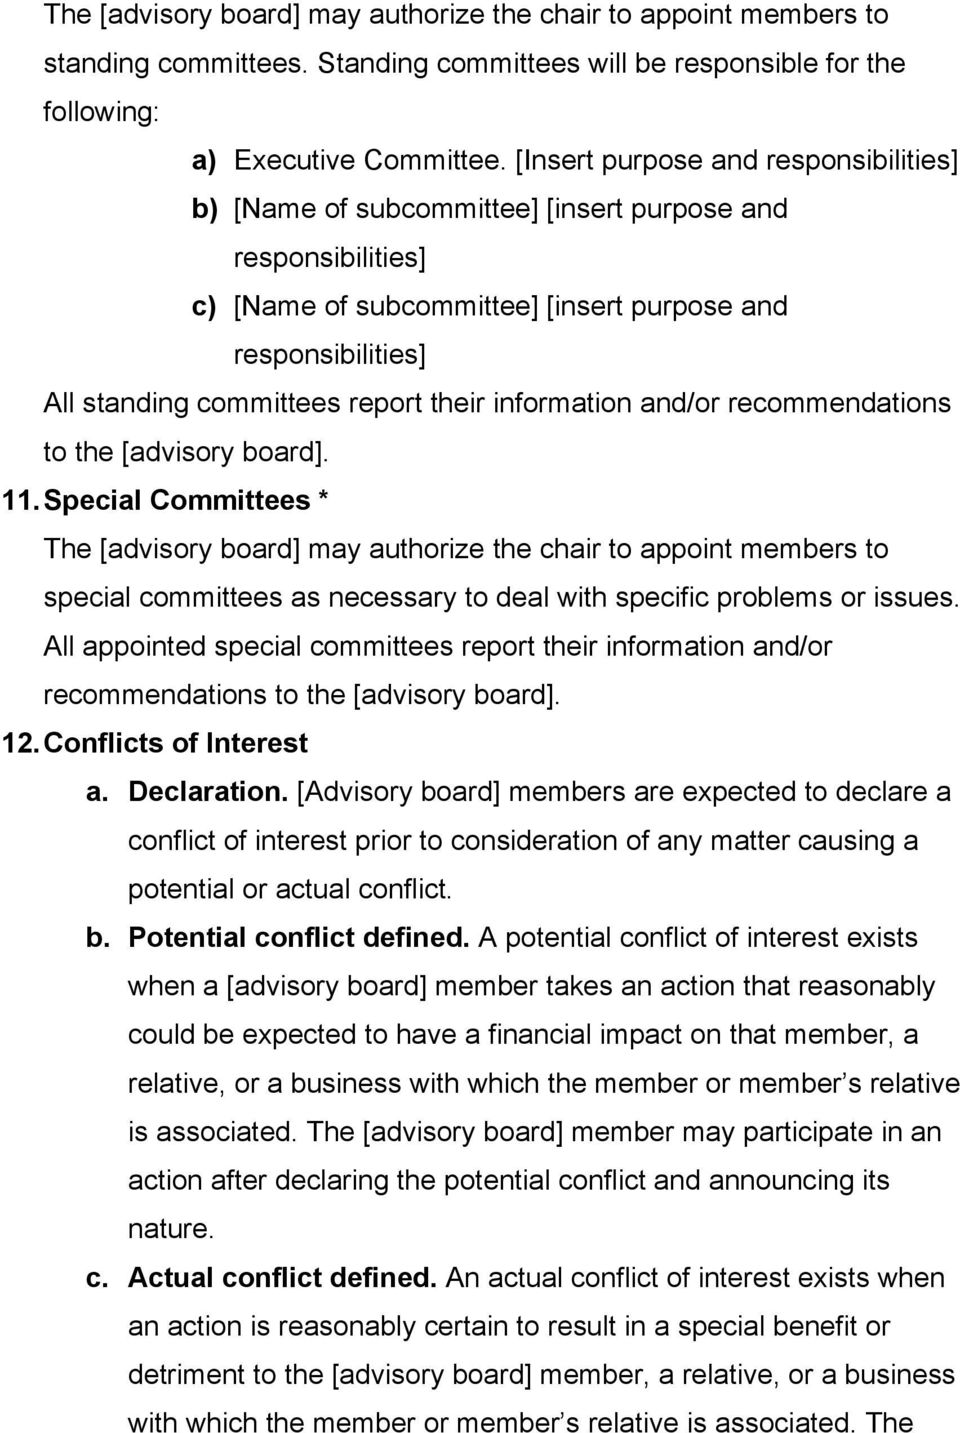 their information and/or recommendations to the [advisory board]. 11.